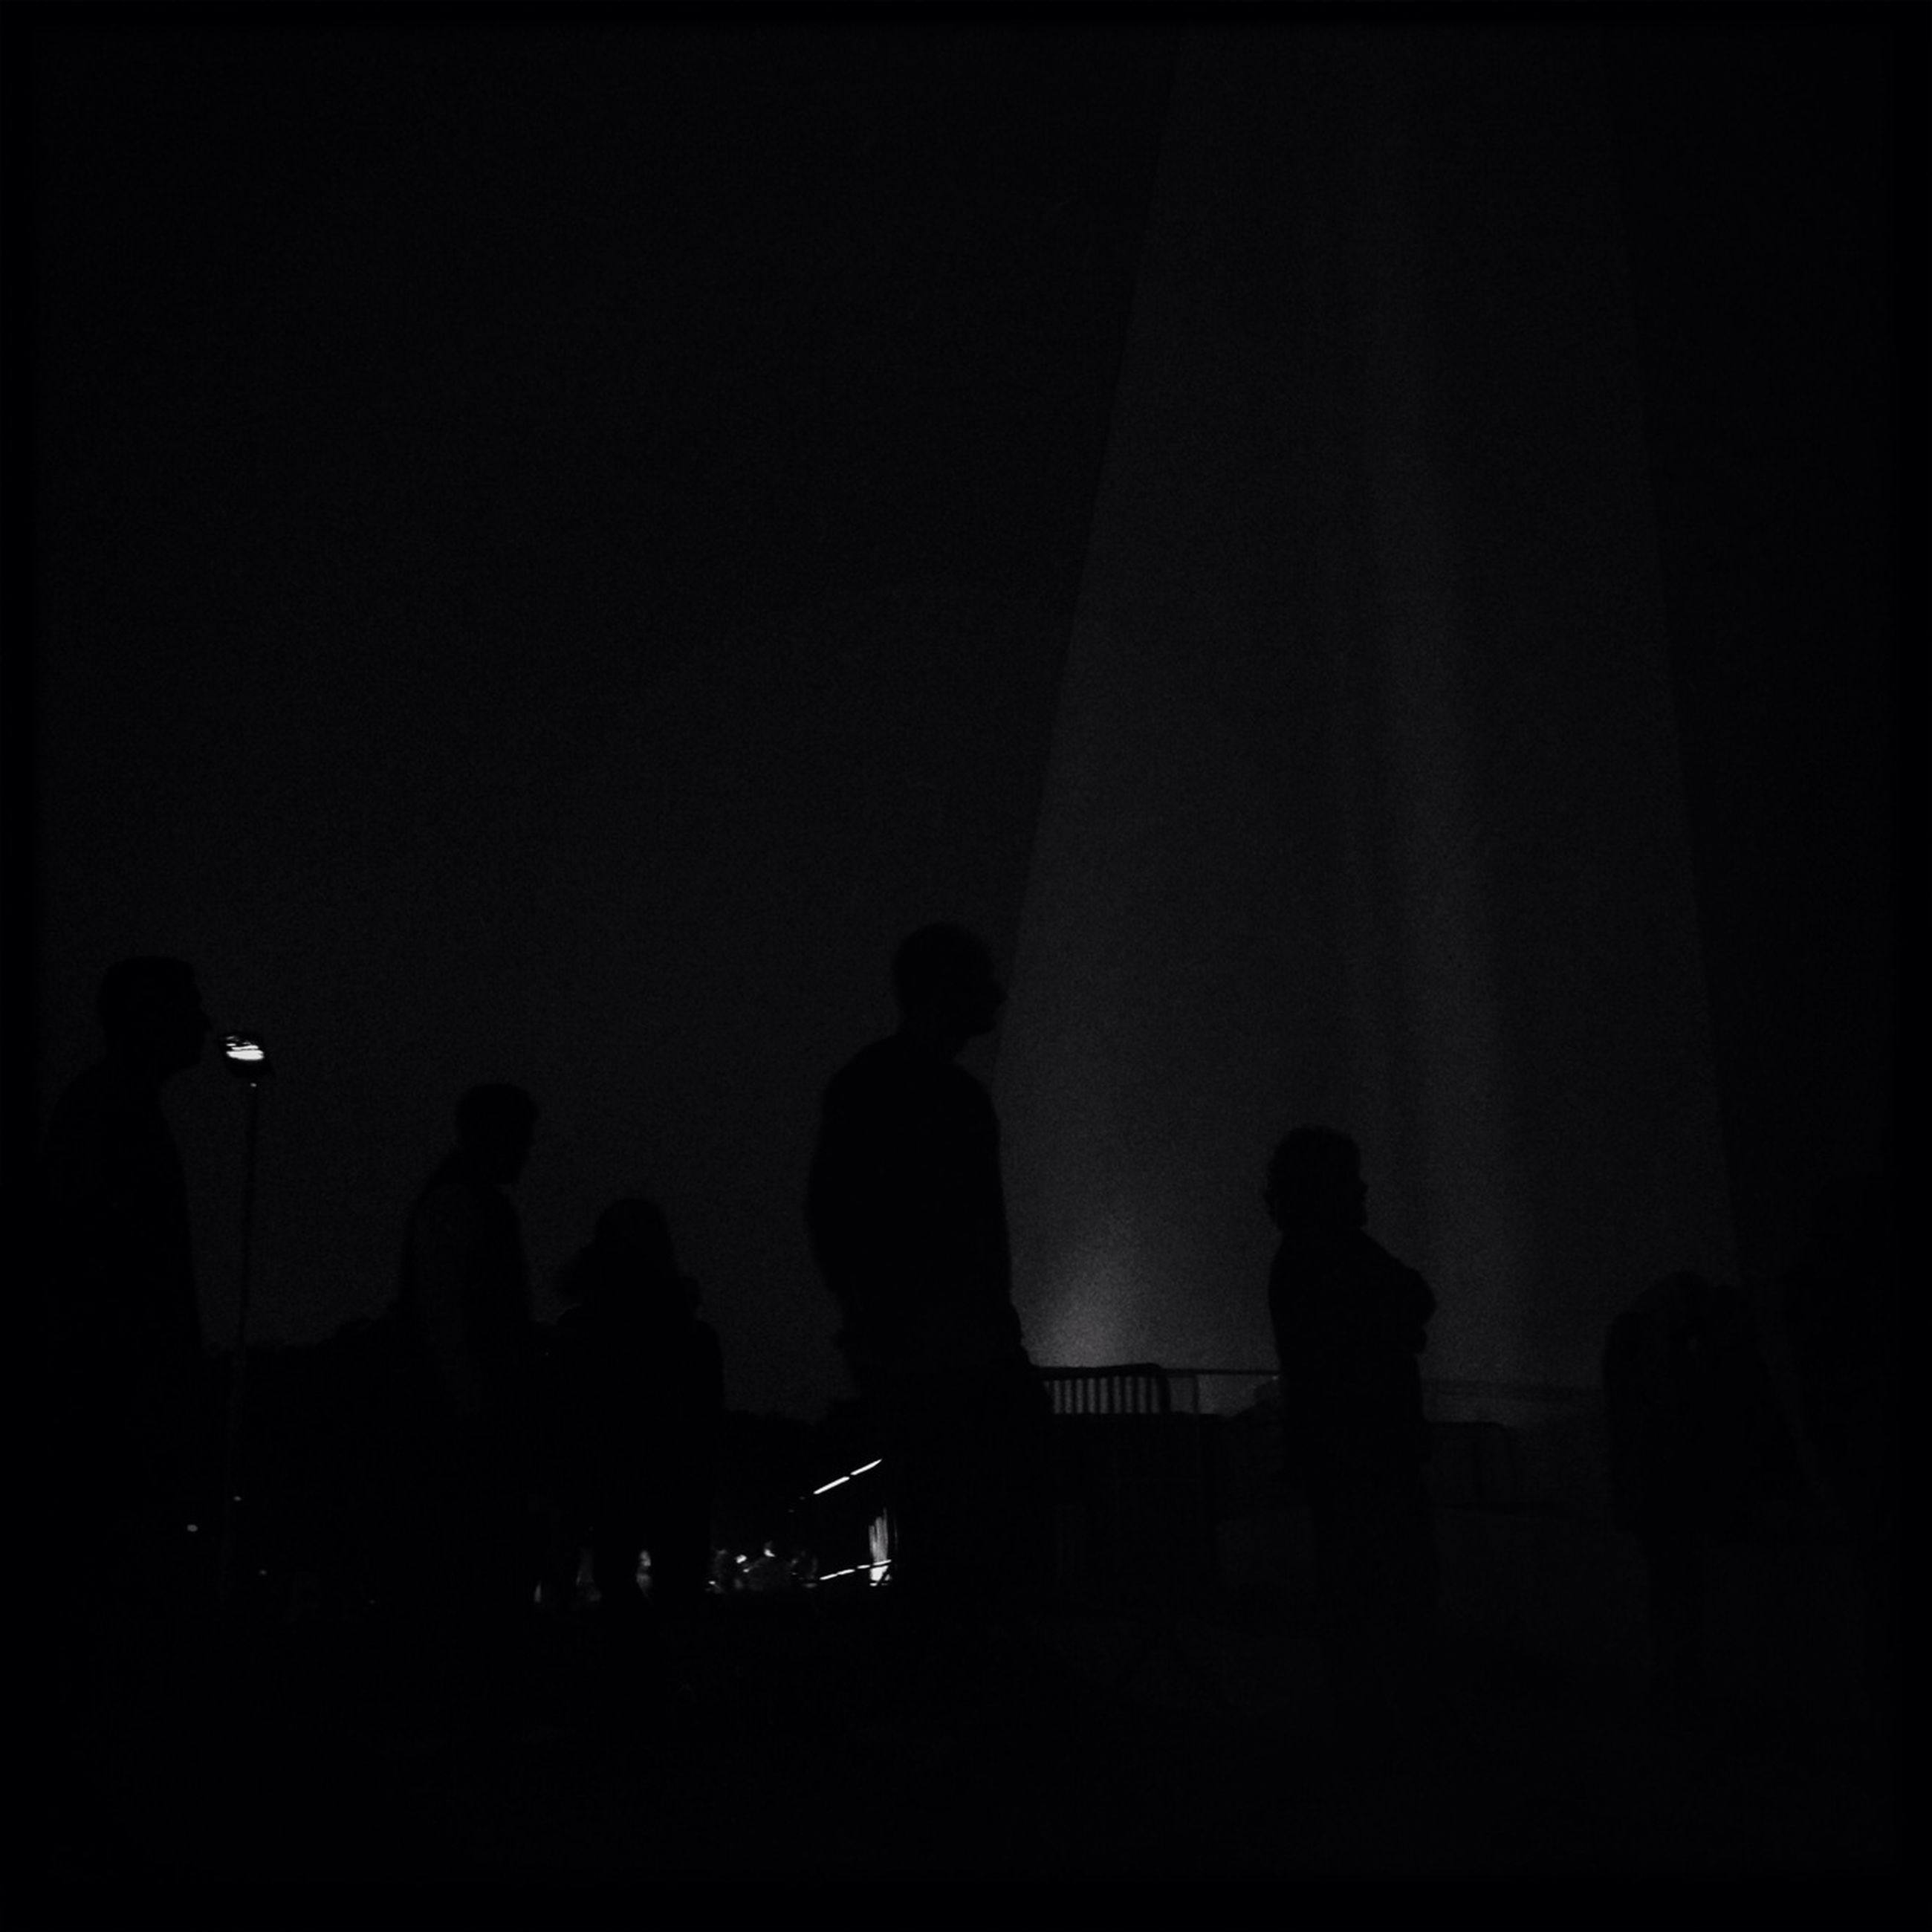 silhouette, men, lifestyles, night, person, dark, large group of people, leisure activity, copy space, illuminated, outline, standing, group of people, togetherness, unrecognizable person, medium group of people, indoors, walking